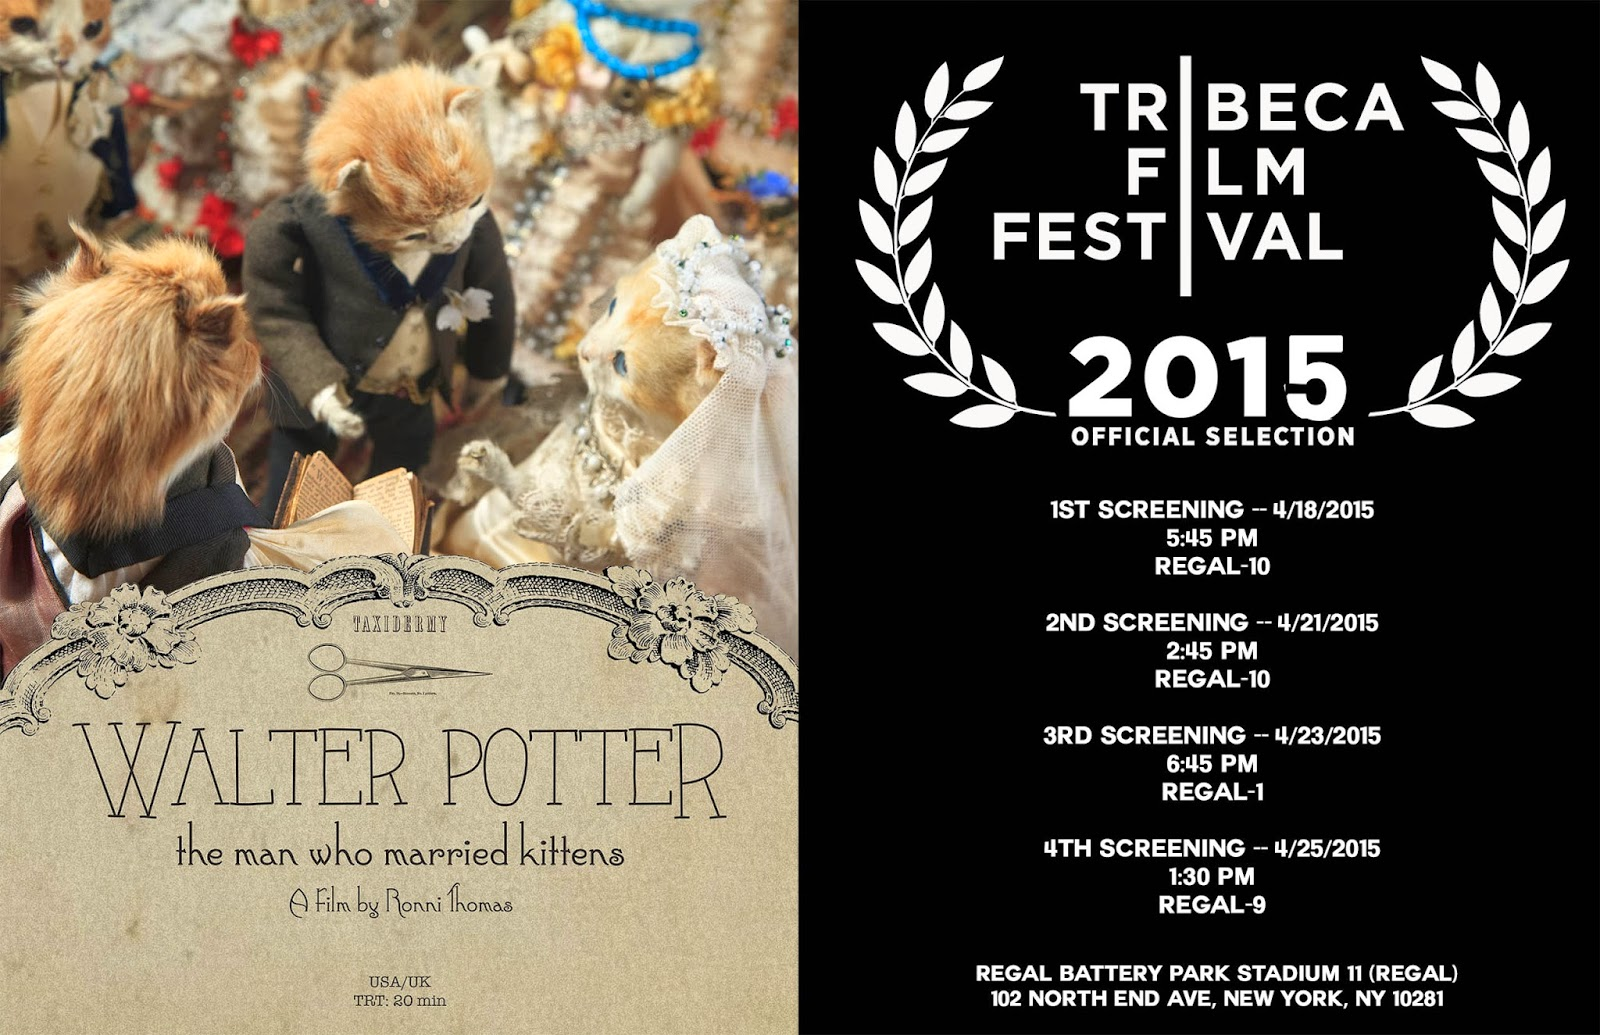 http://morbidanatomymuseum.org/audio/walter-potter-the-man-who-married-kittens-2014/